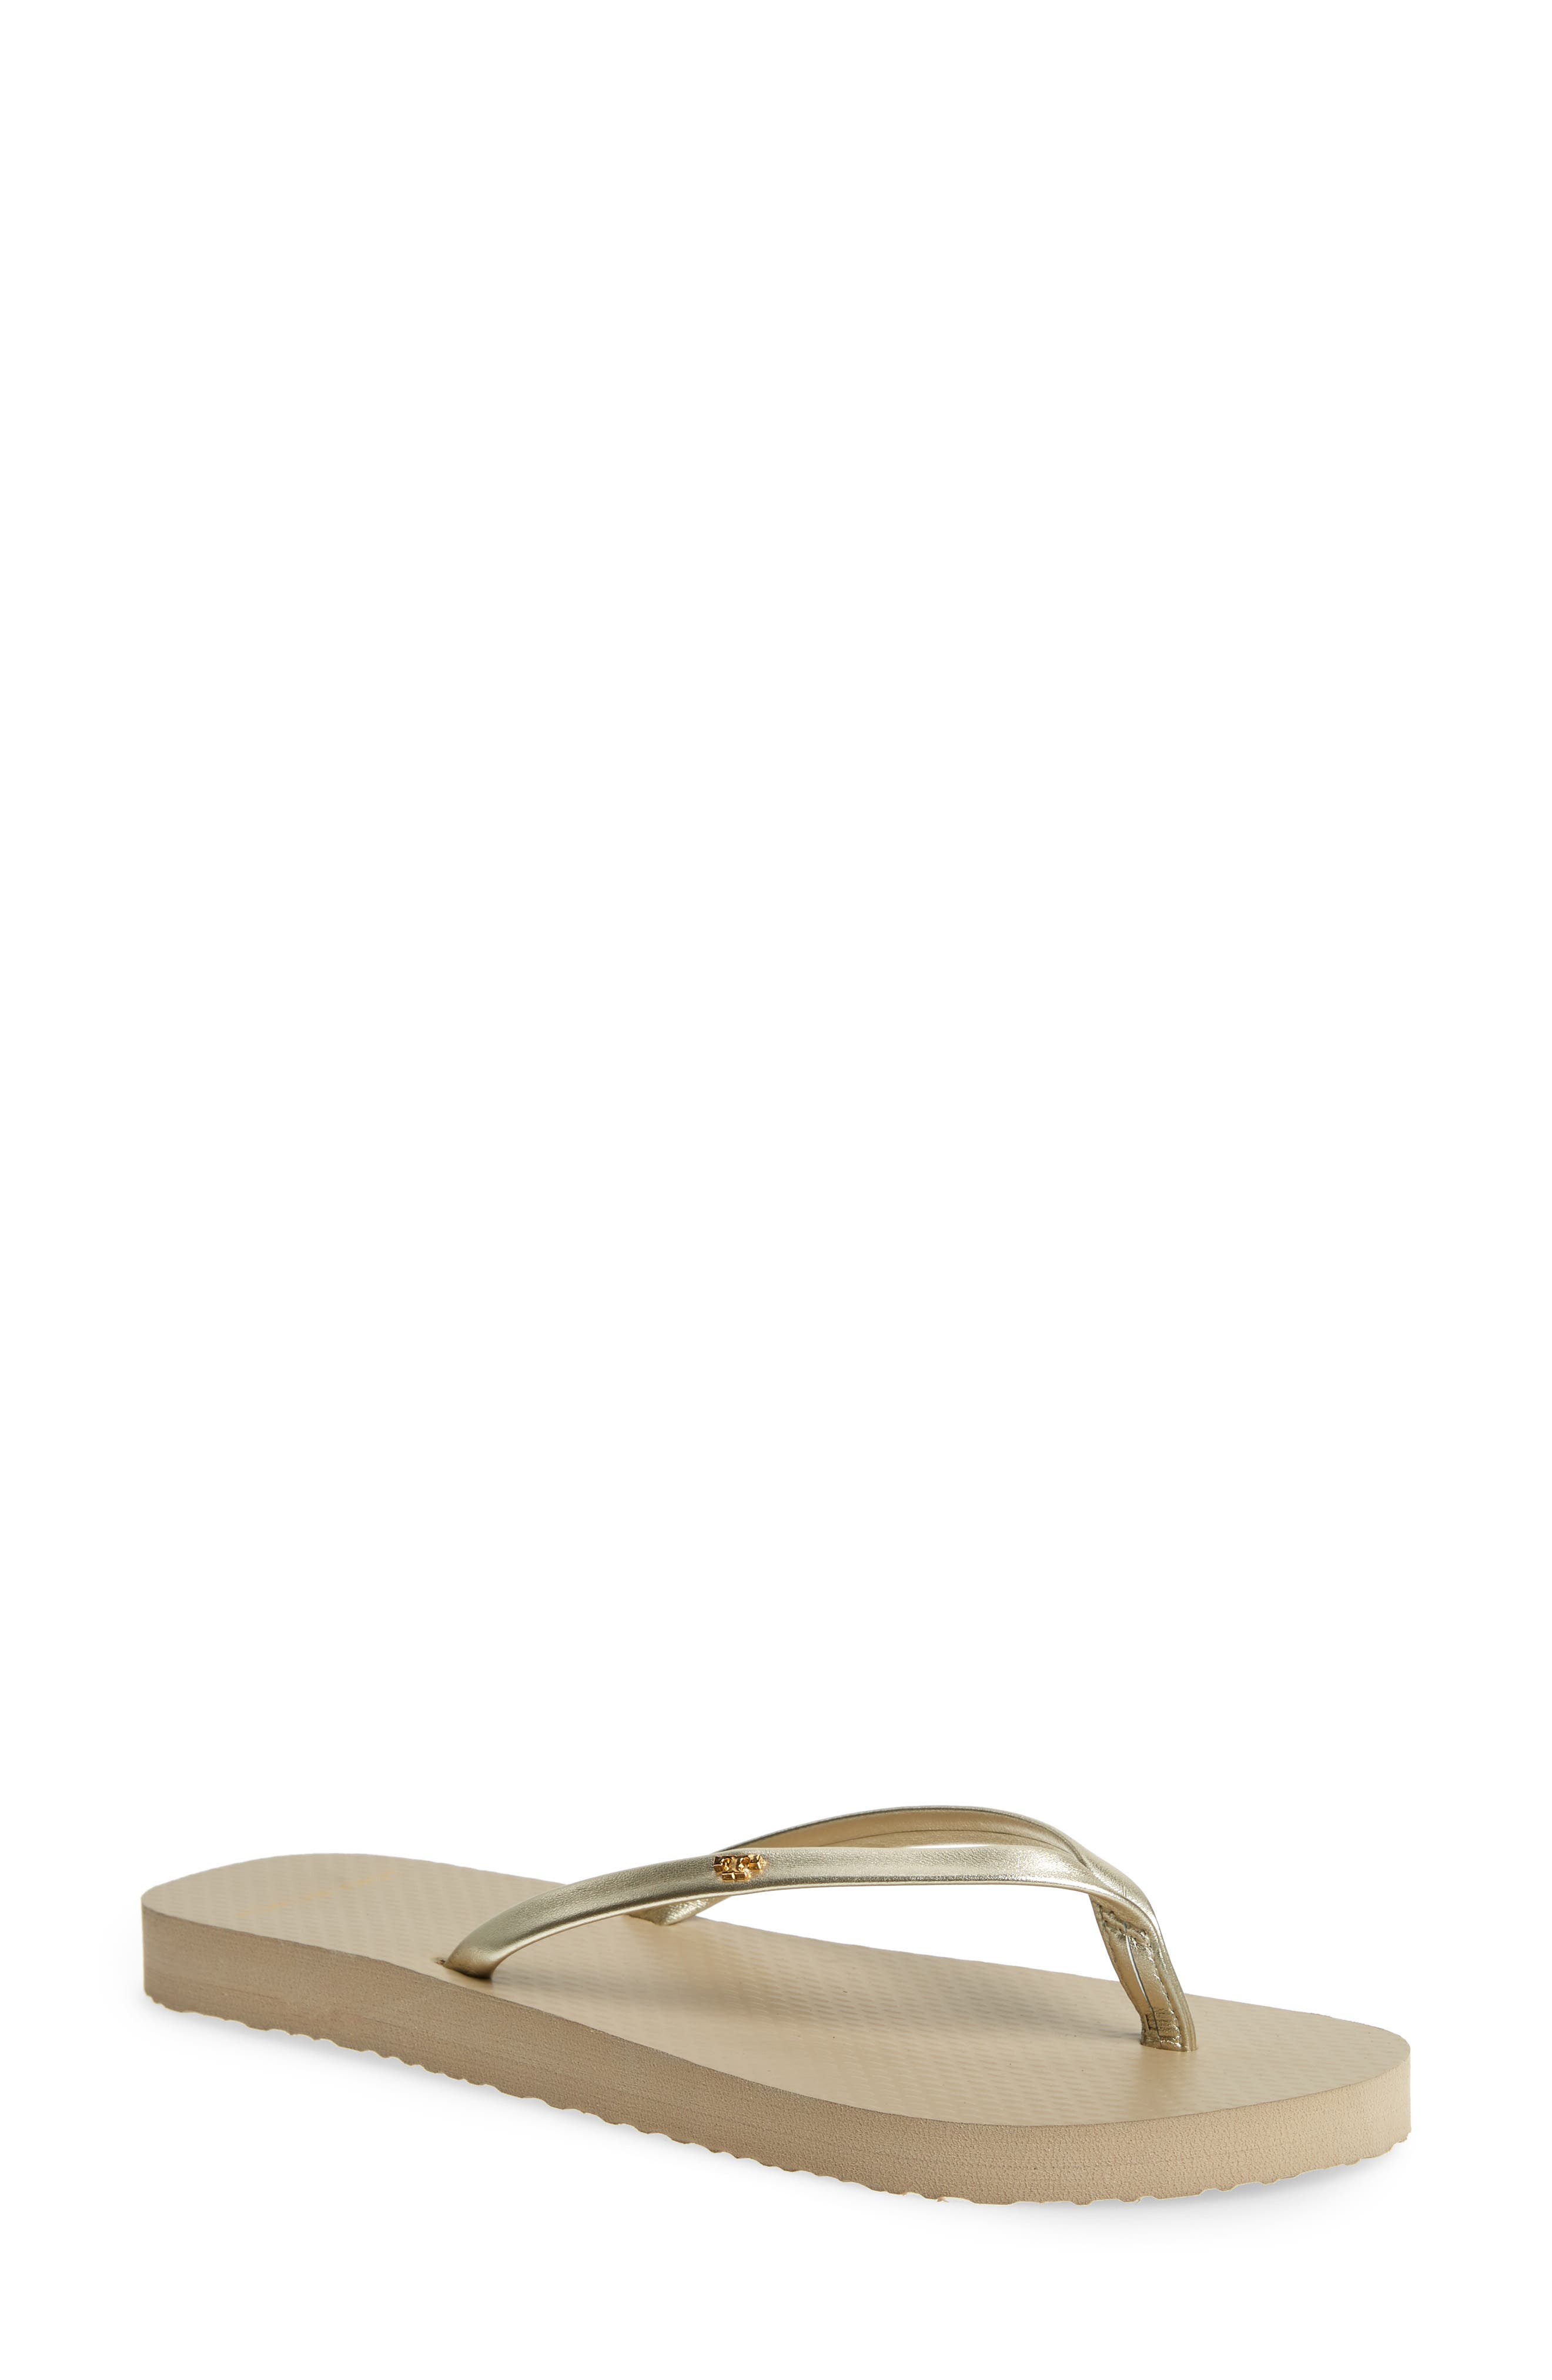 TORY BURCH Logo Metallic Flip Flop, Main, color, SPARK GOLD/ LIGHT TAUPE